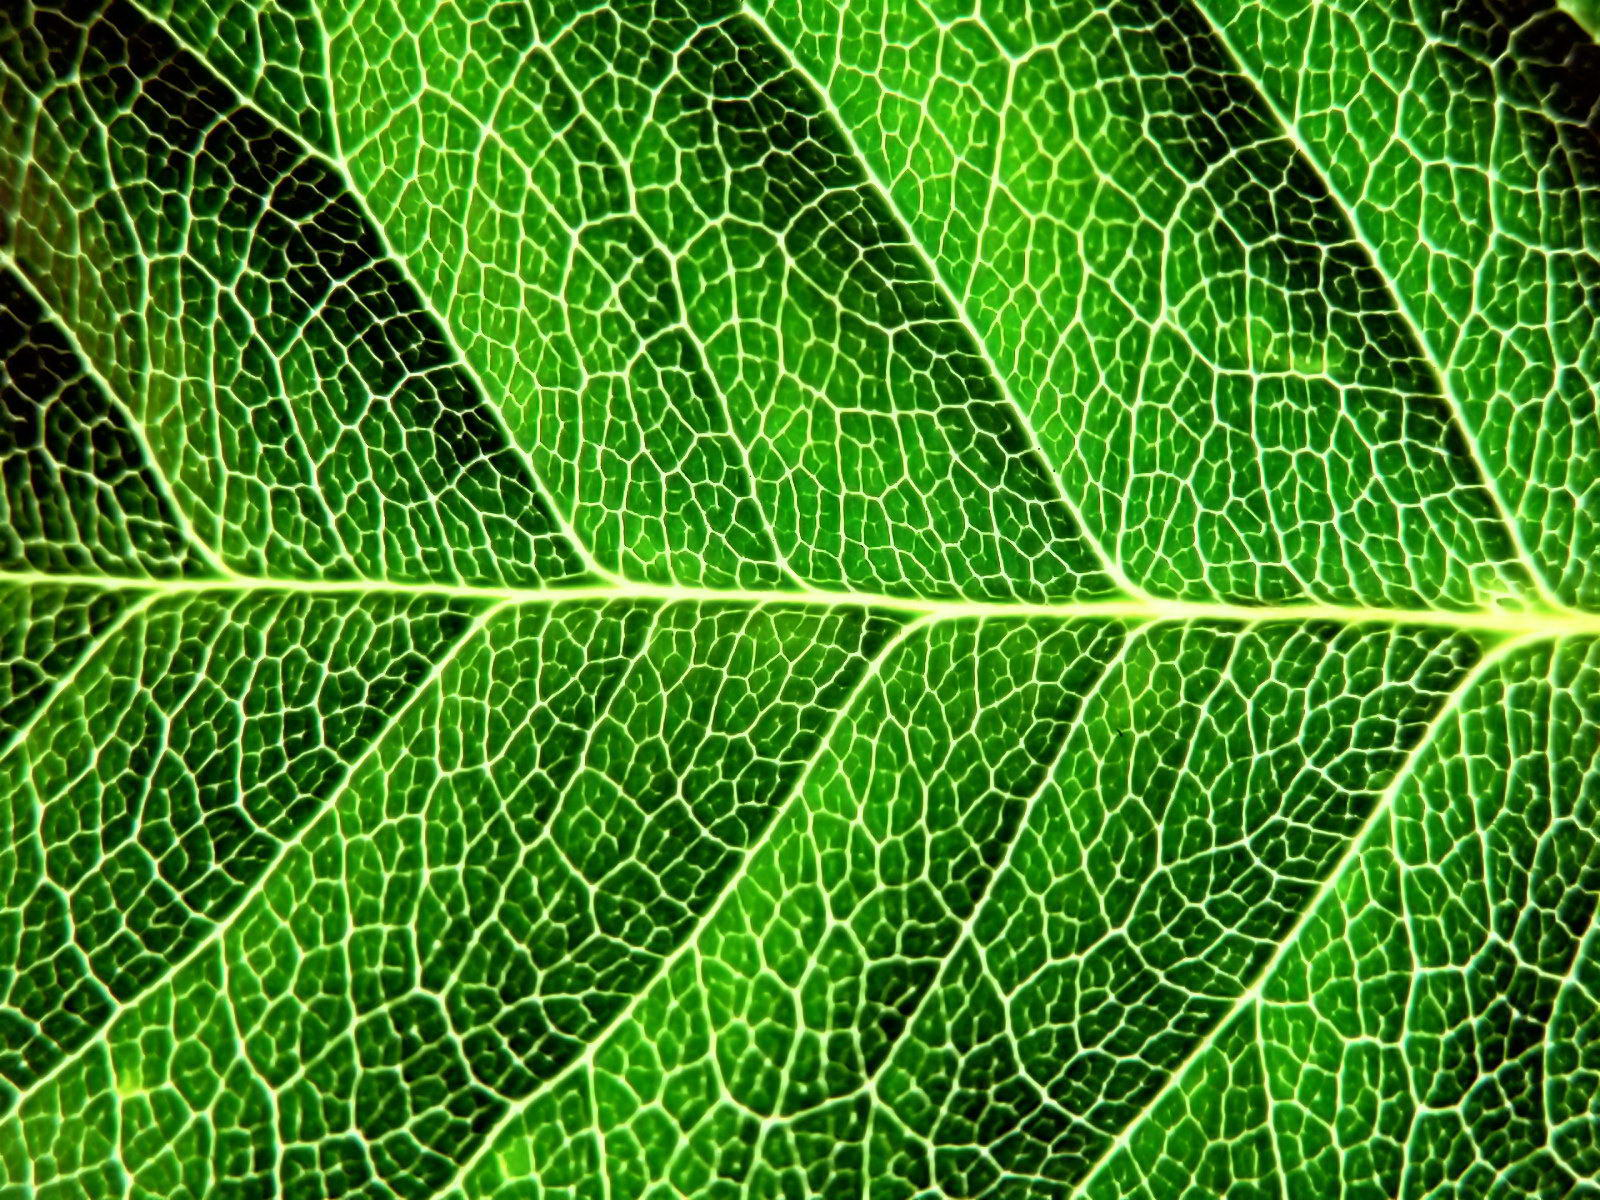 green leaf, download photo, texture, green leave texture, background